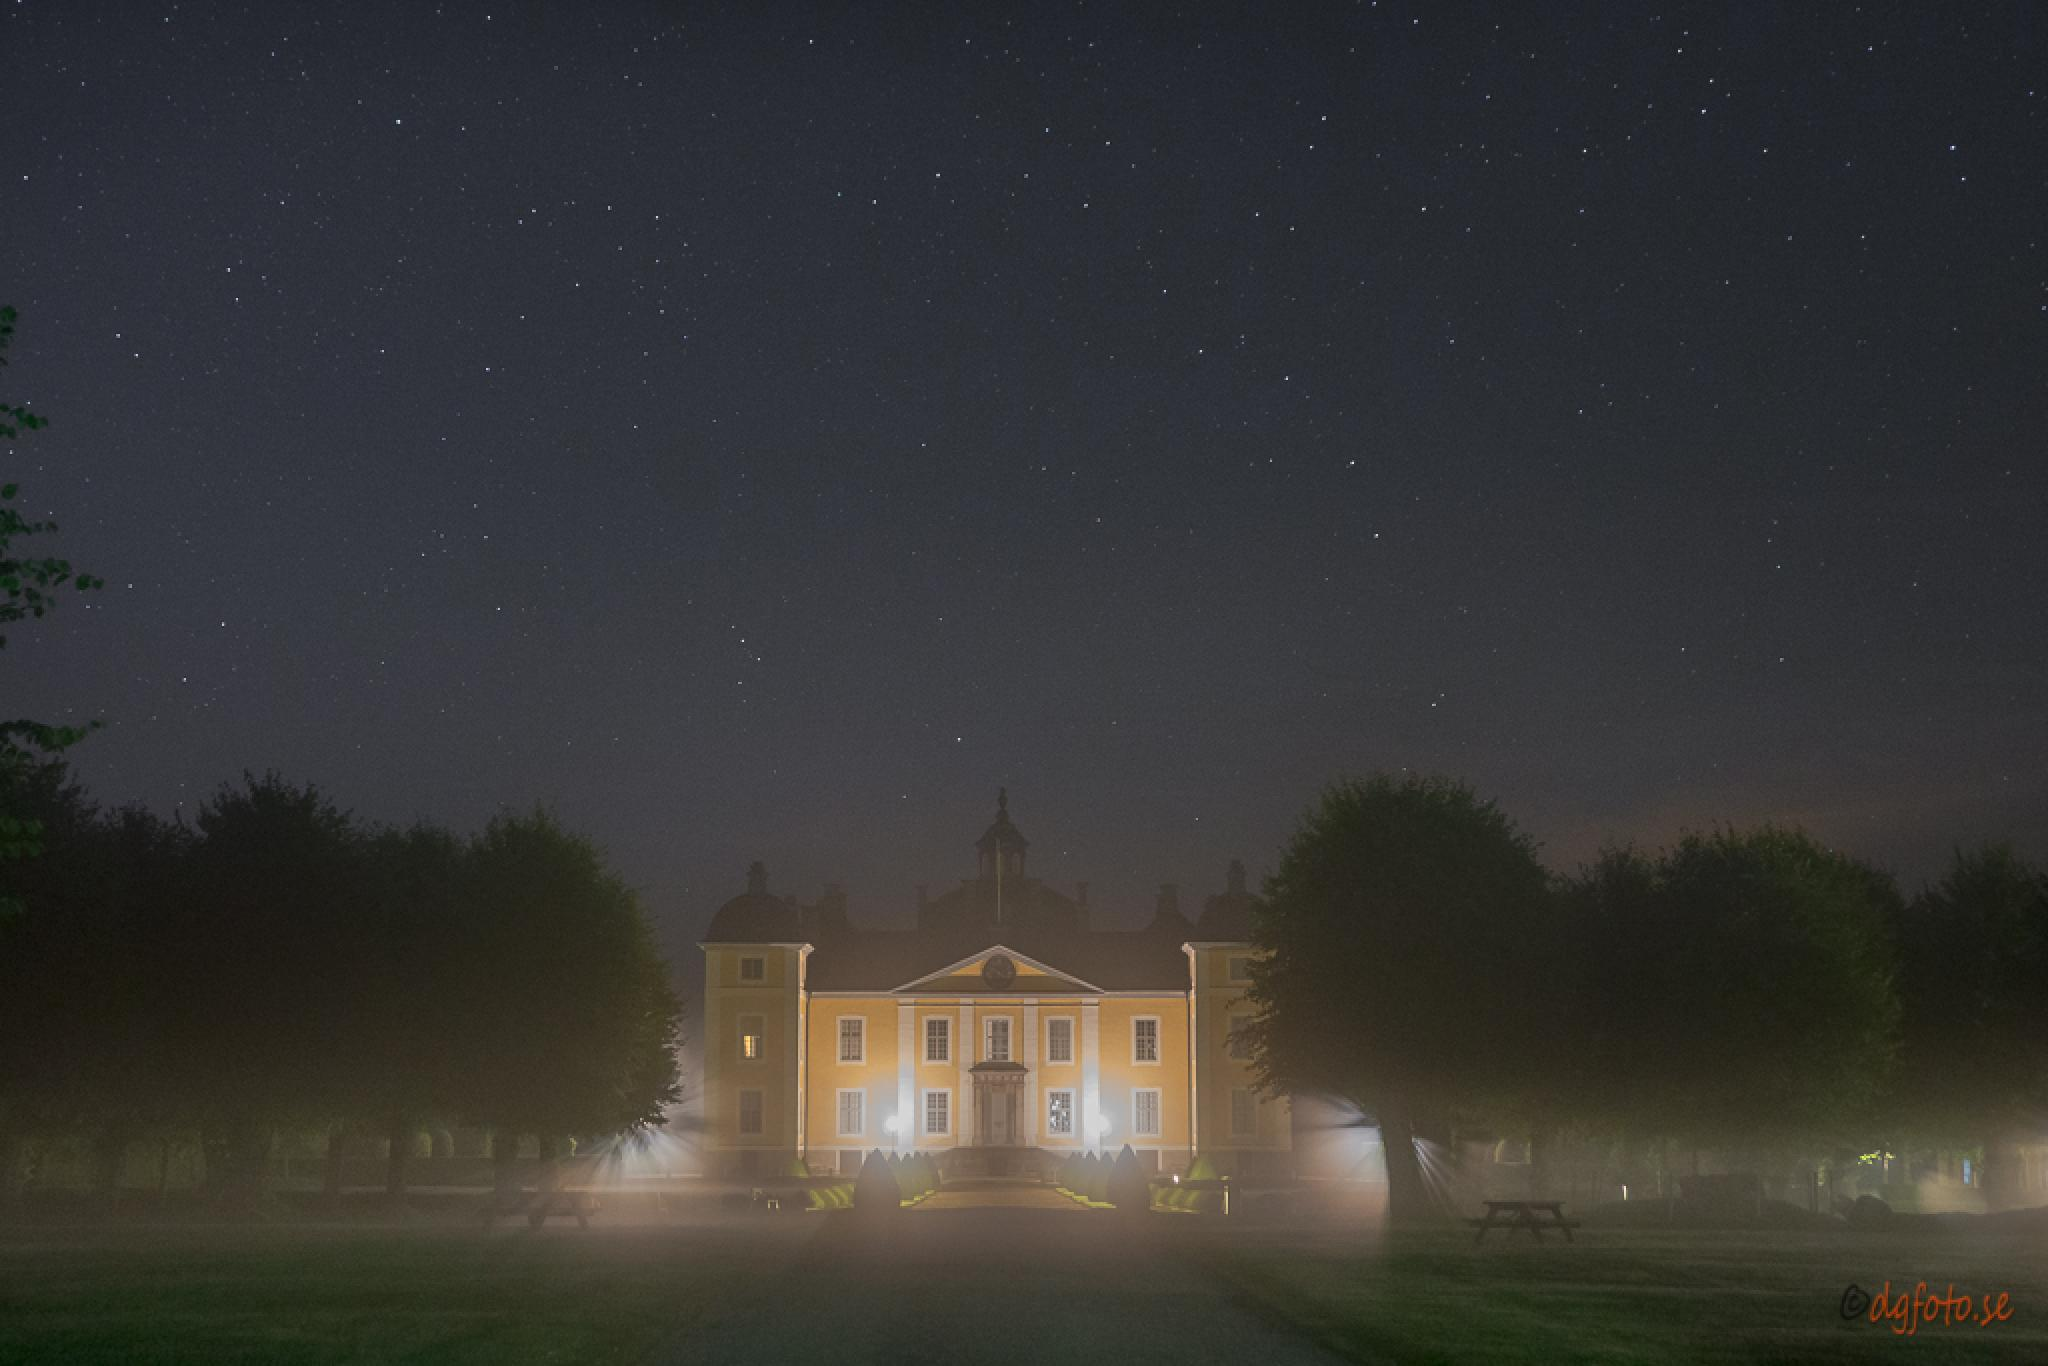 Strömsholms Castle in the fog by Dennis Graversen